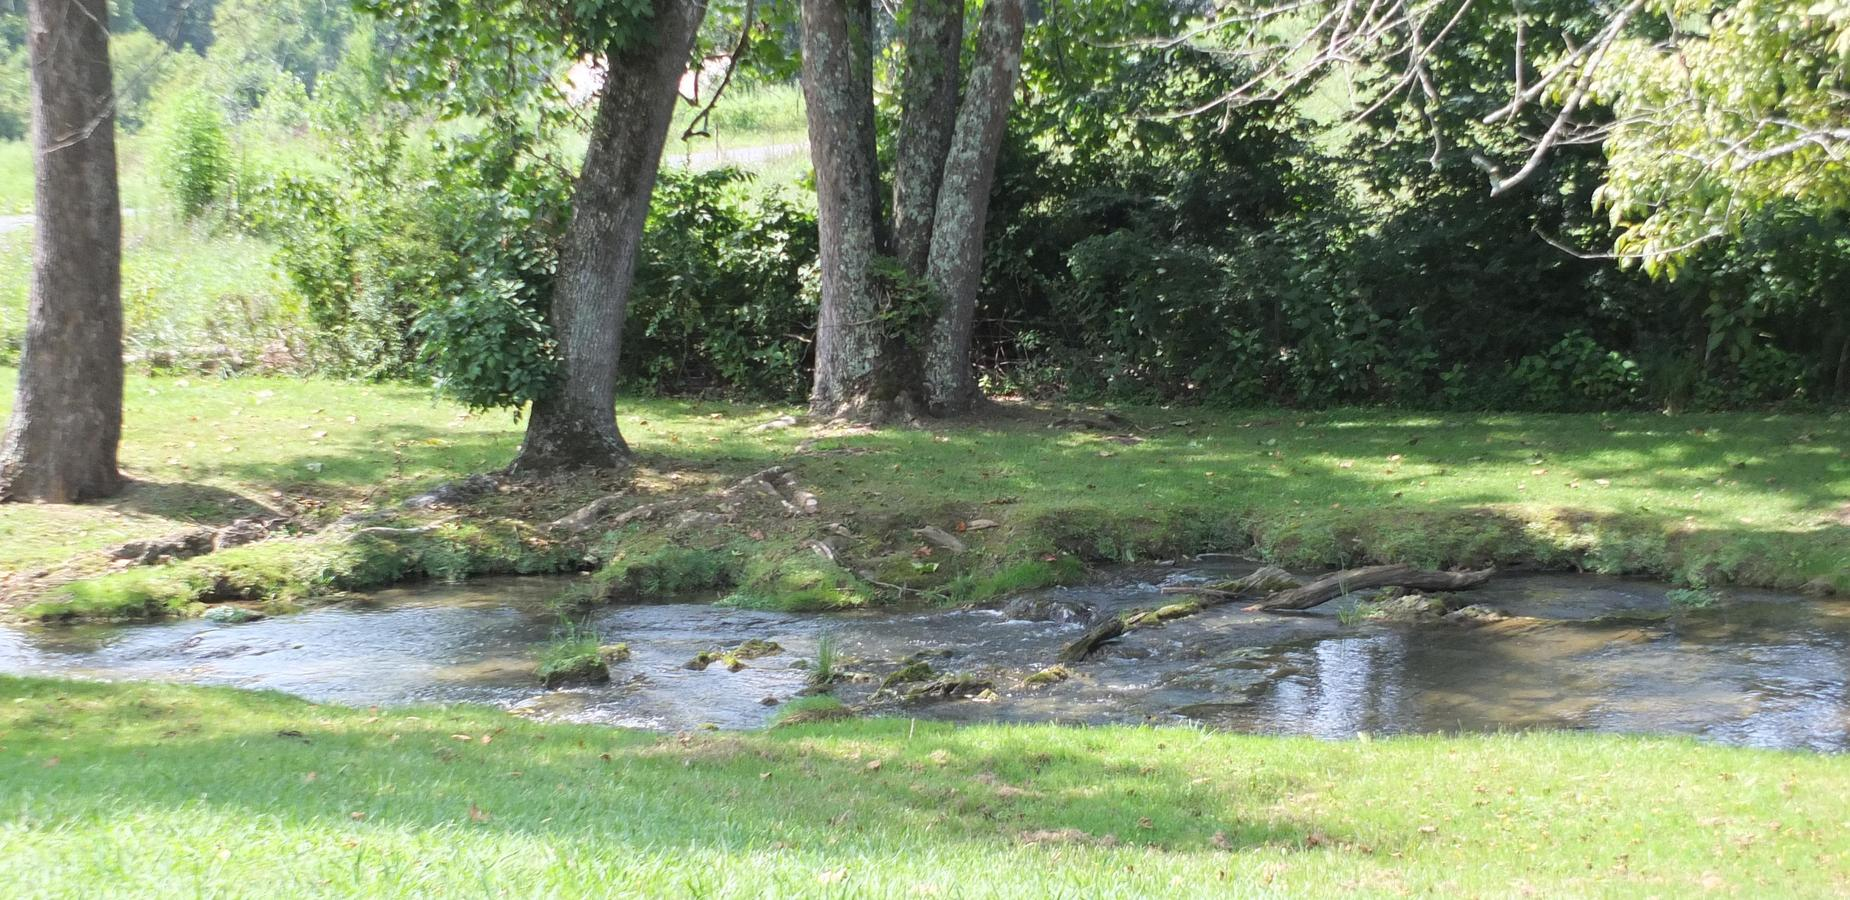 Picture of a stream running by some trees near a field.